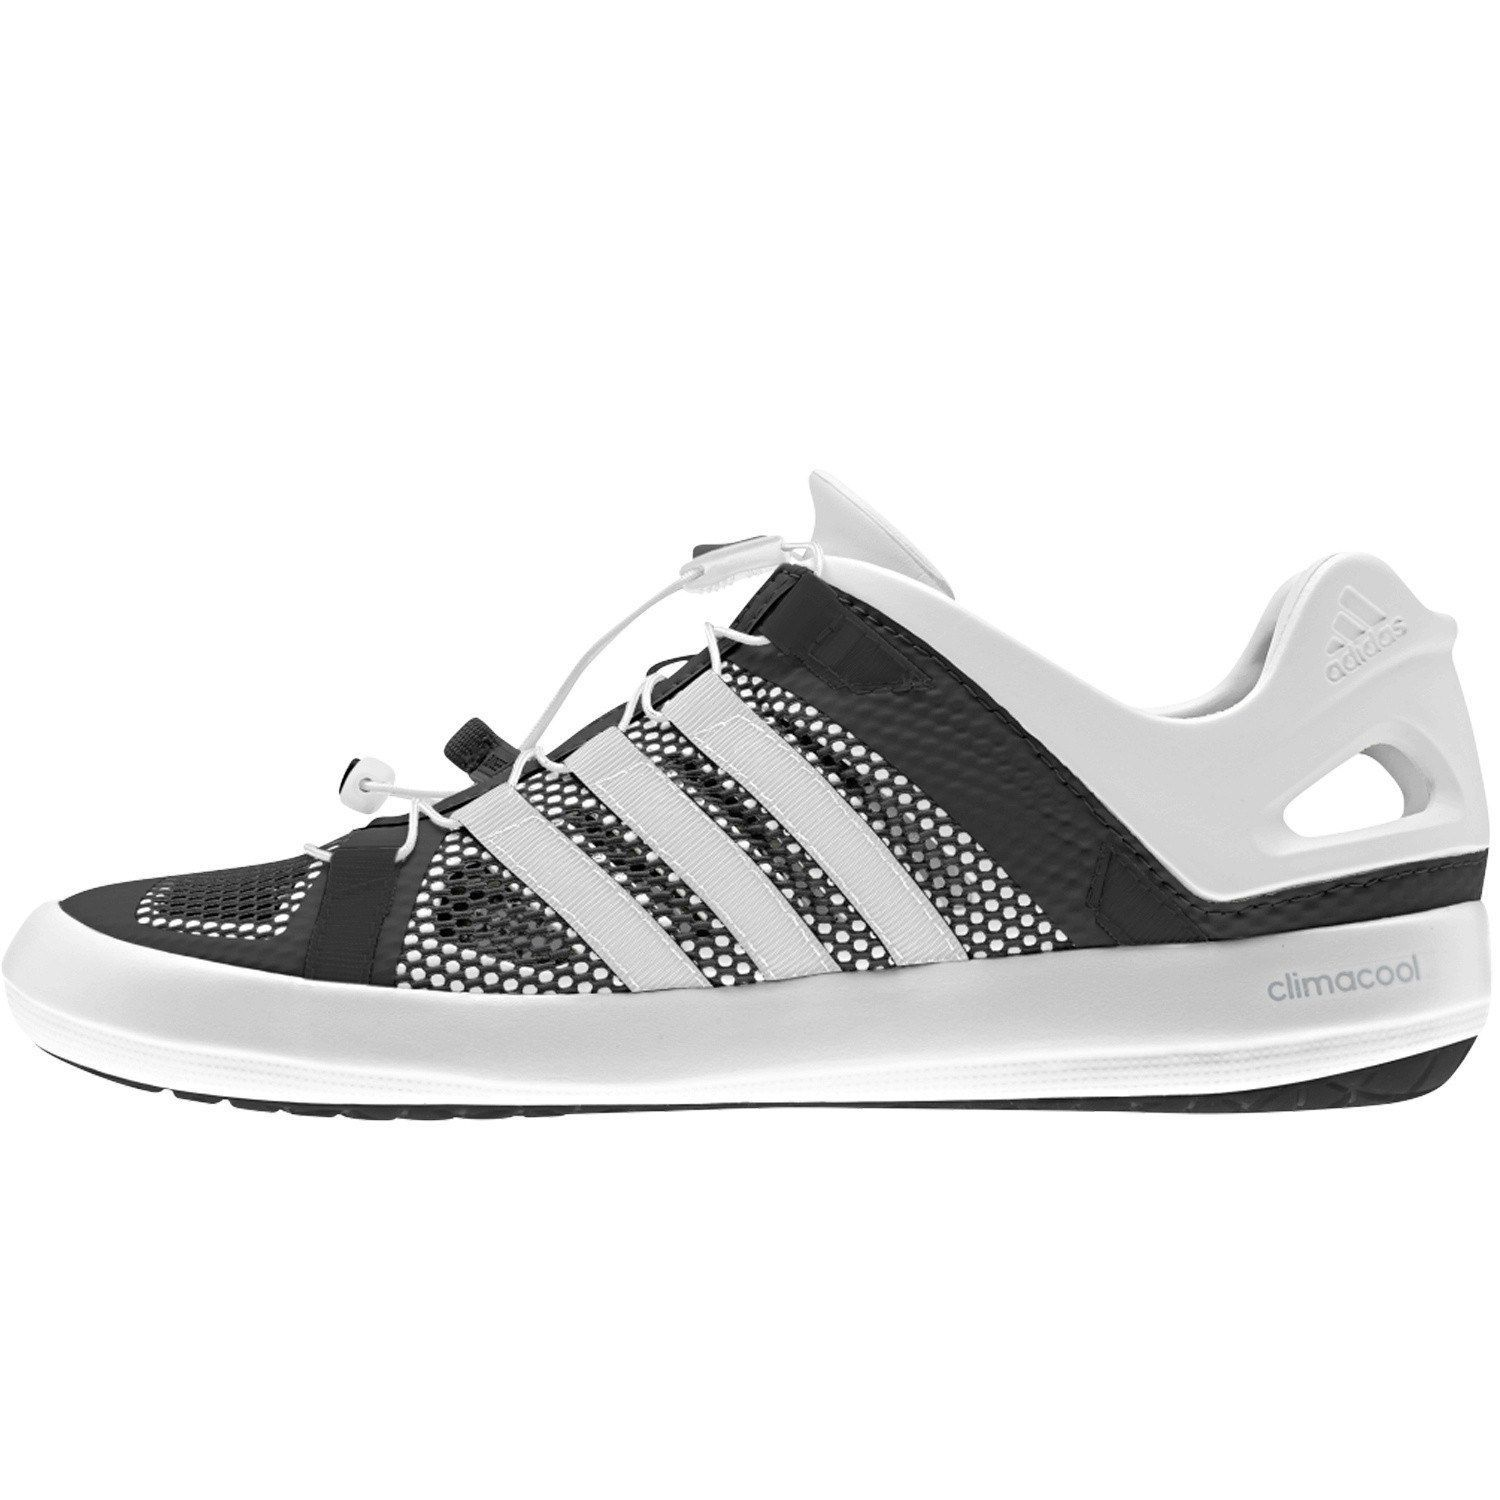 adidas men's climacool boat shoes